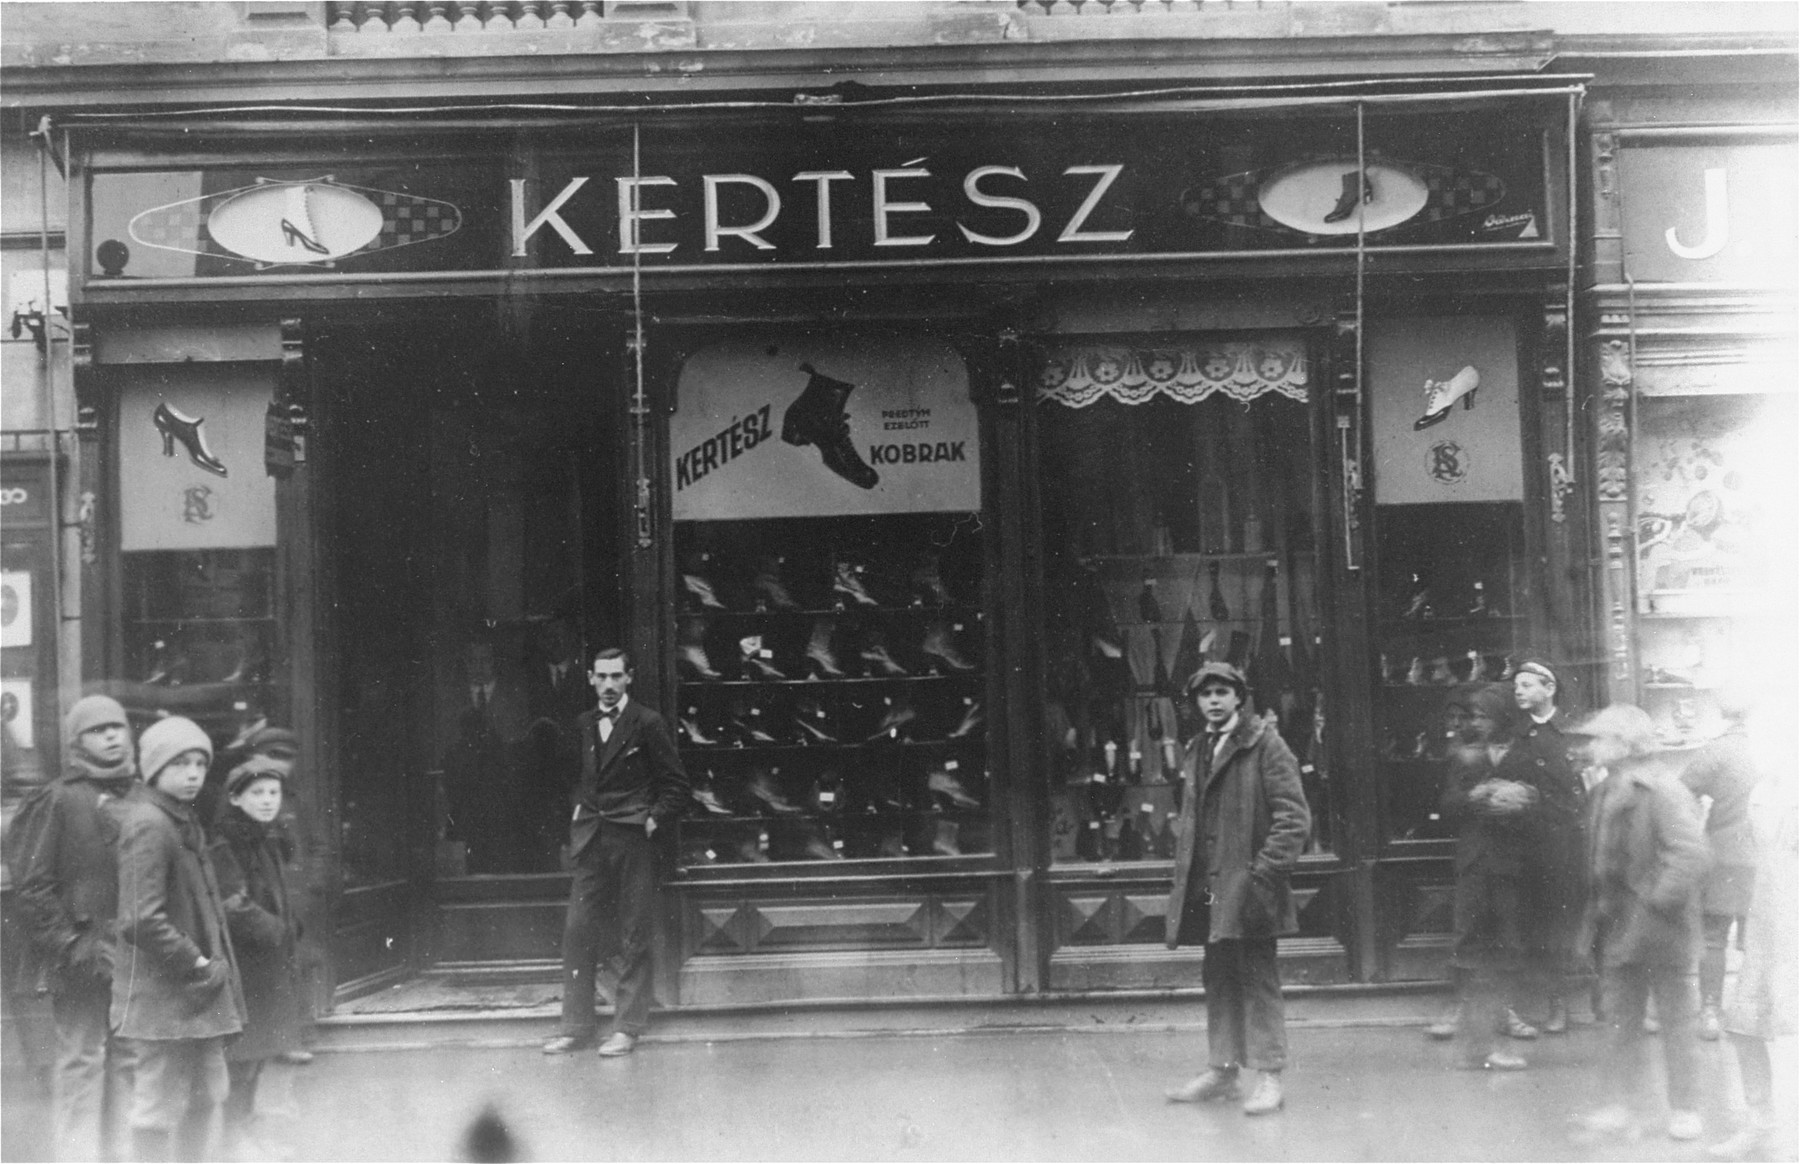 View of the Kertesz shoe store in Kosice, Slovakia, owned by the Jewish businessman, Samuel Kertesz.   Samuel Kertesz, who is the maternal grandfather of Eva (Halmos) Kuhn, perished in Auschwitz in 1944.